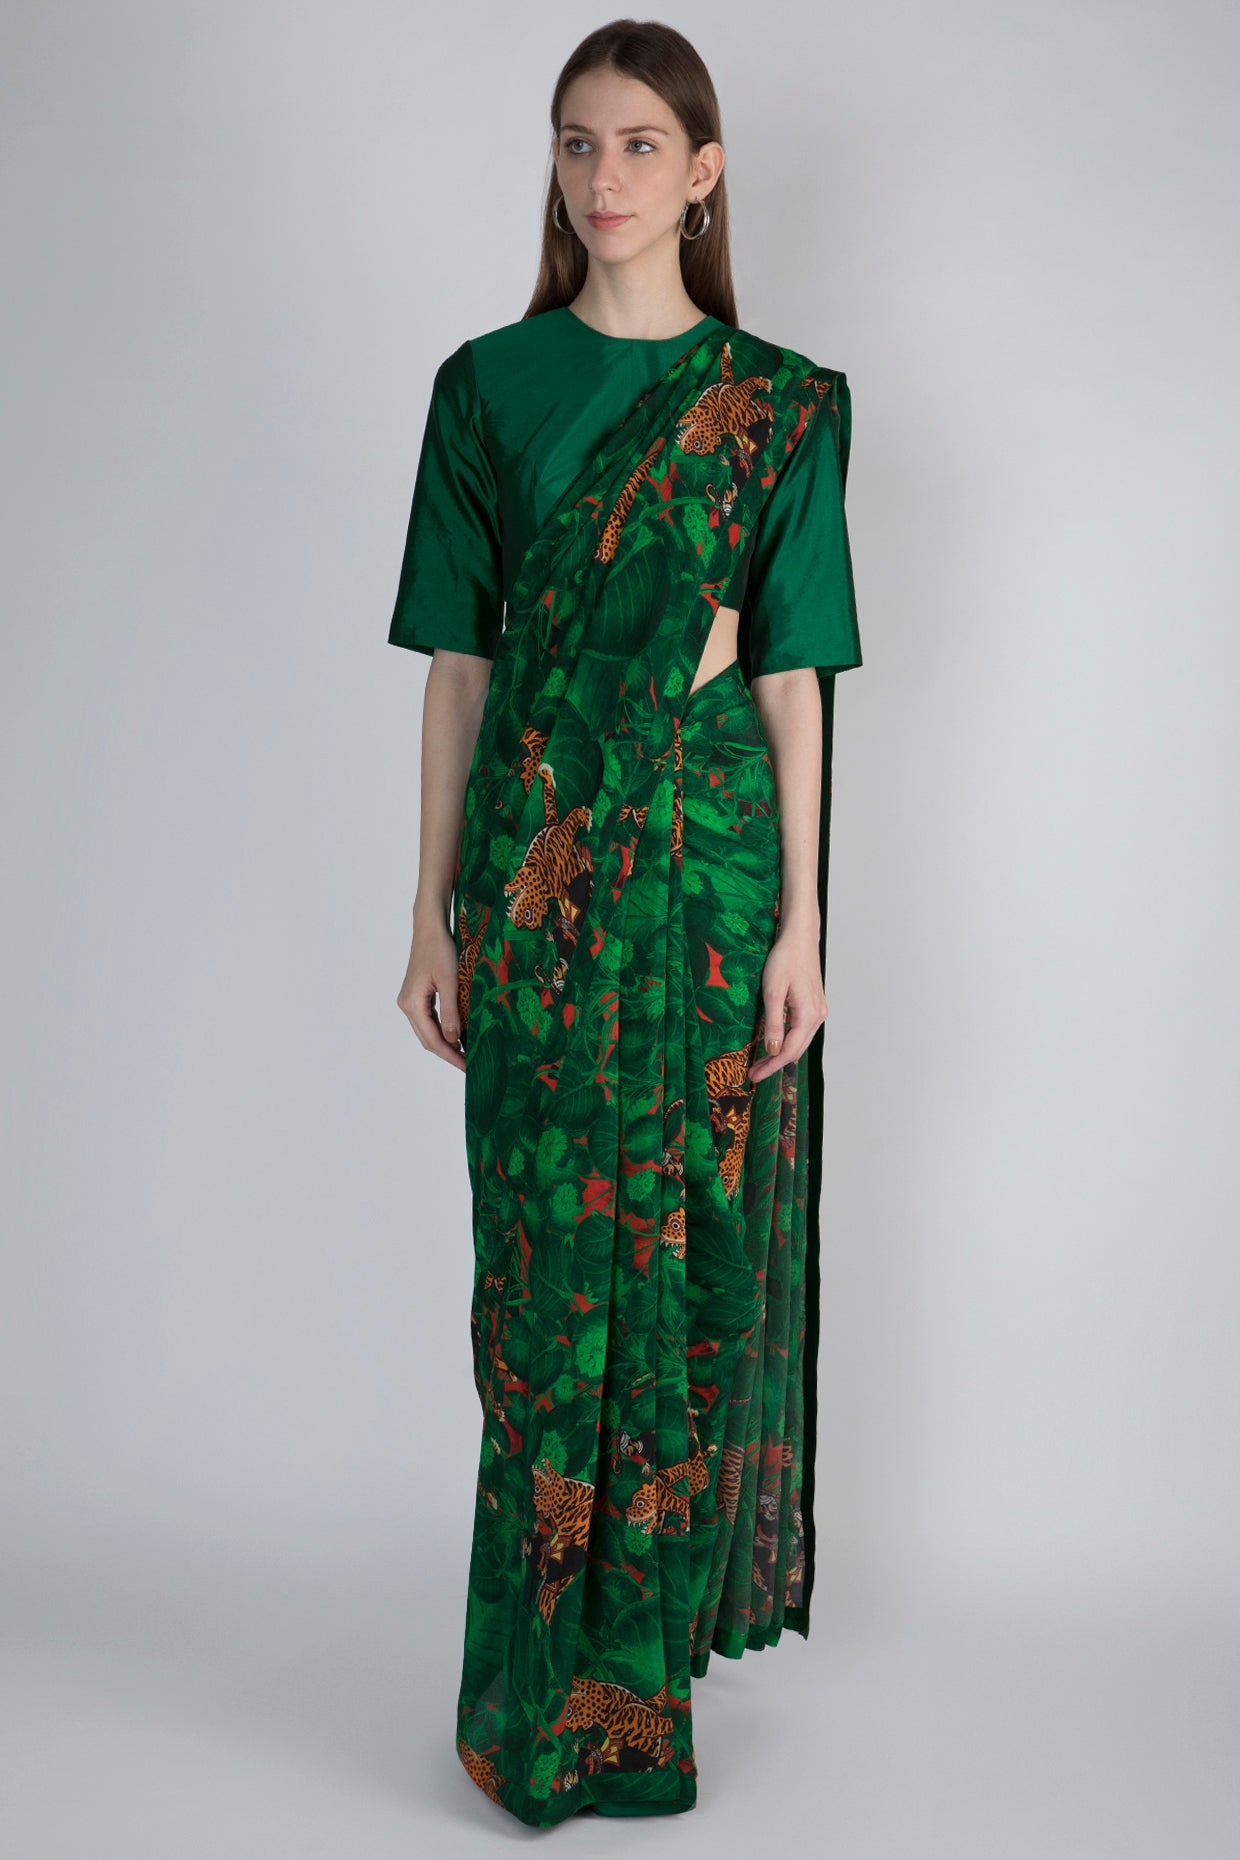 EMERALD JUNGLE SARI WITH EMERALD BLOUSE - The Grand Trunk